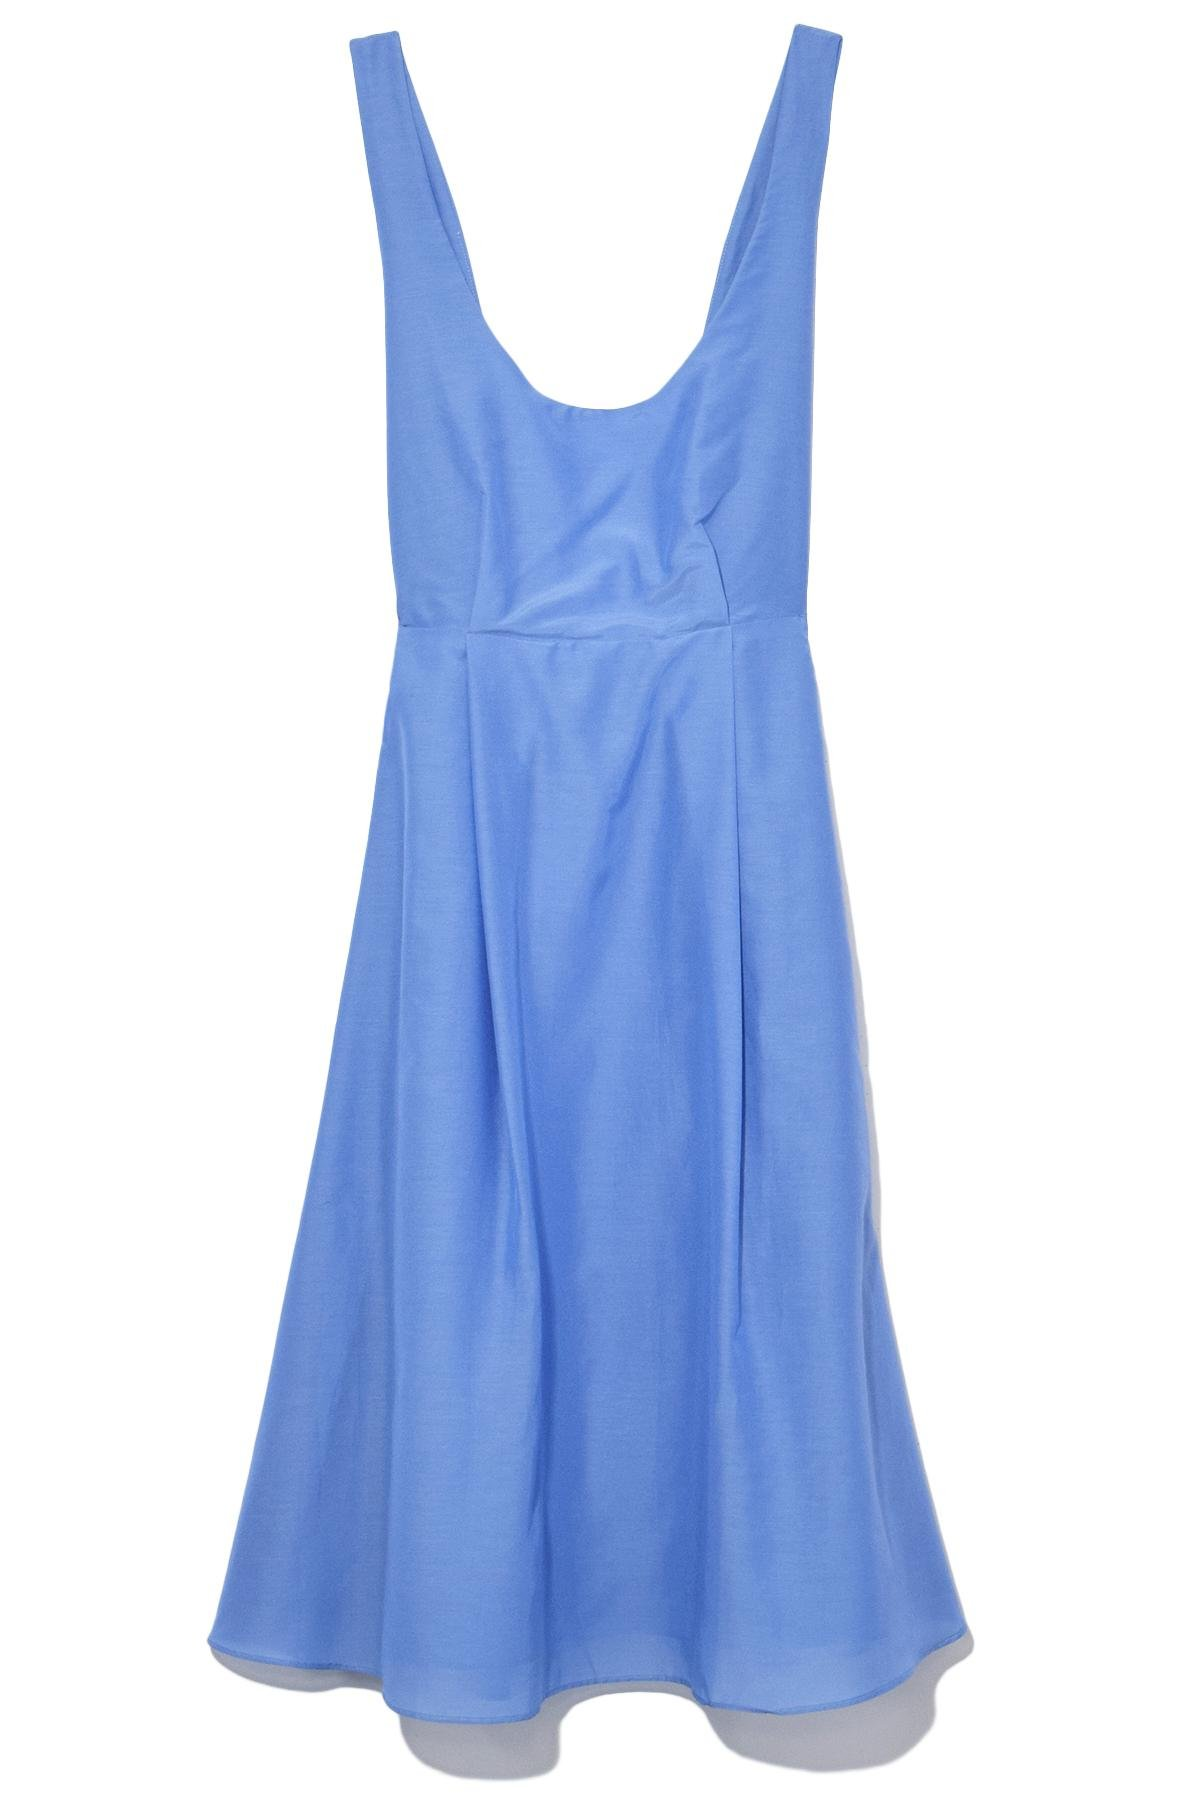 Lyst - Ciao Lucia Simona Dress In Periwinkle in Blue